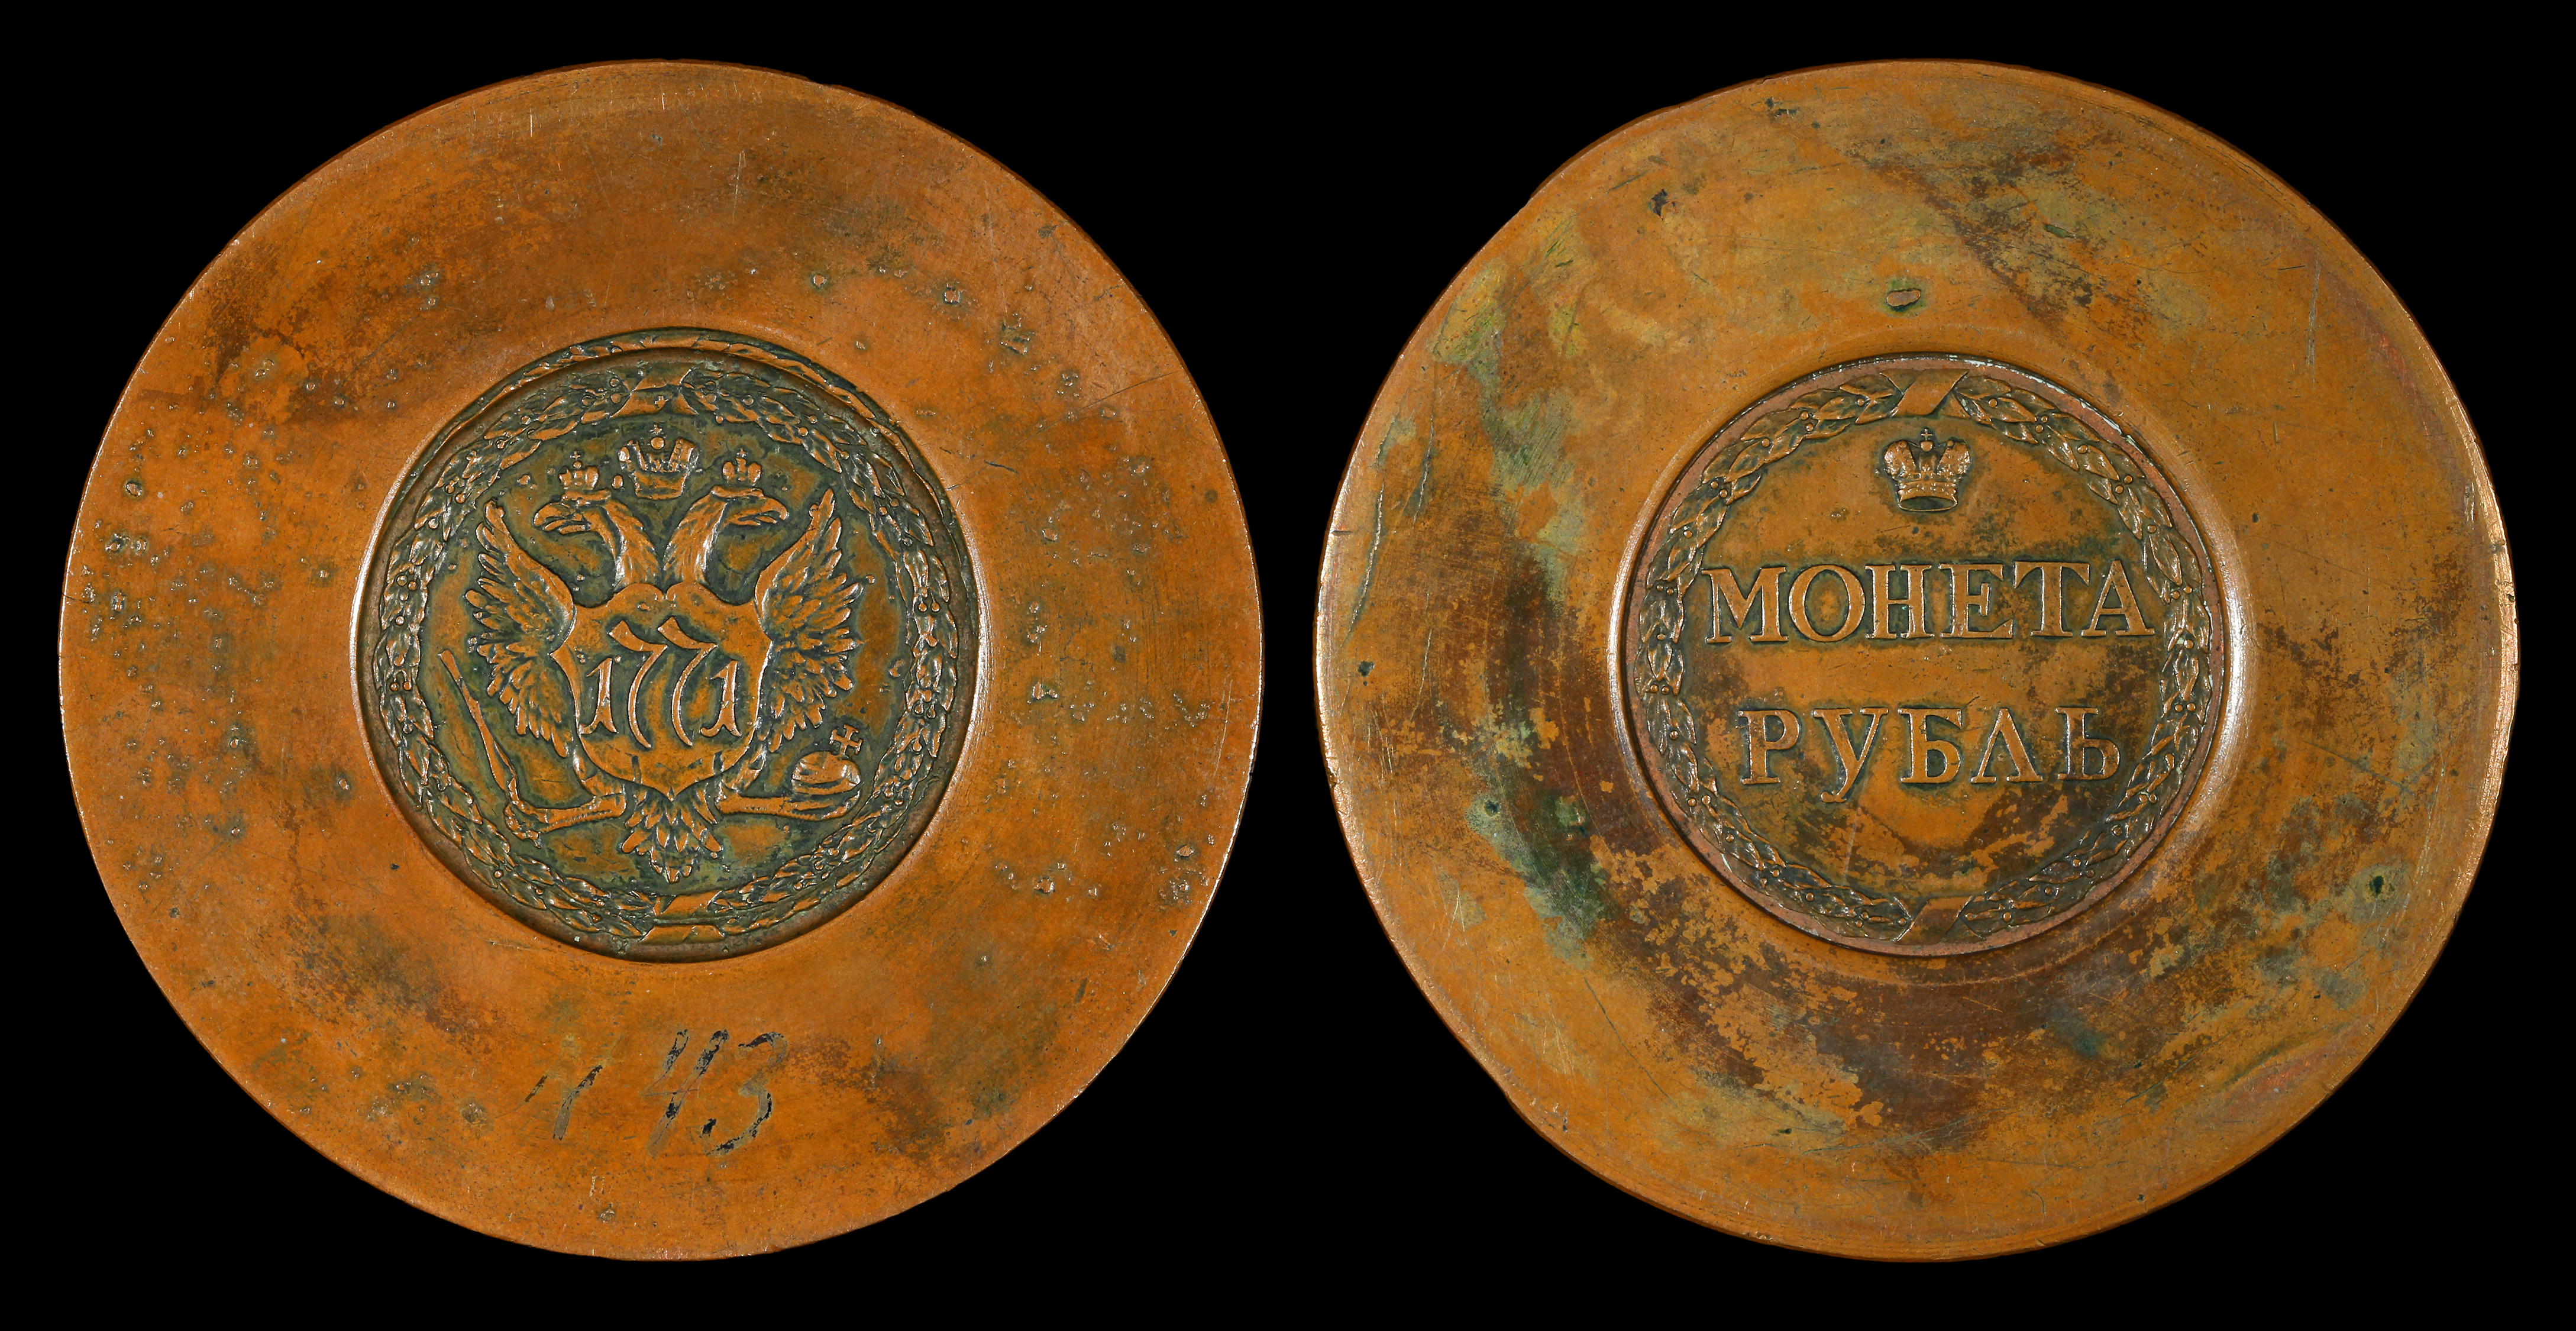 Catherine Ii Sestroretsk Ruble 1771 Is Made Of Solid Copper With A Diameter 77 Millimetres 3 100 In And Thickness 26 1 50